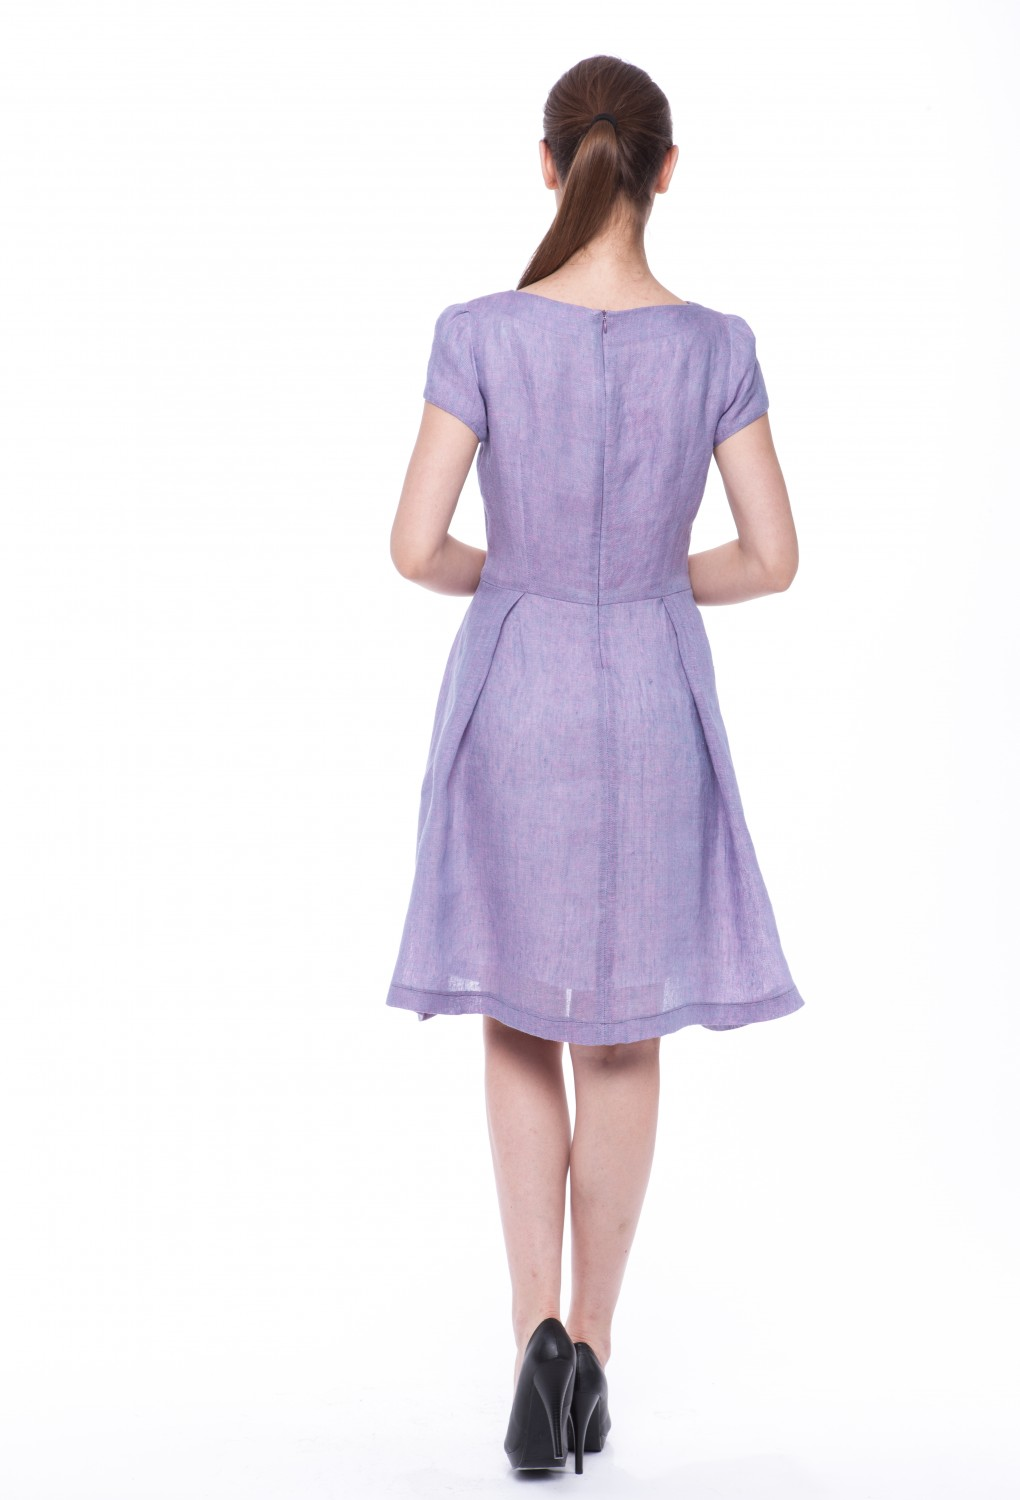 "Summer dress ""Violet"" with sleeves 